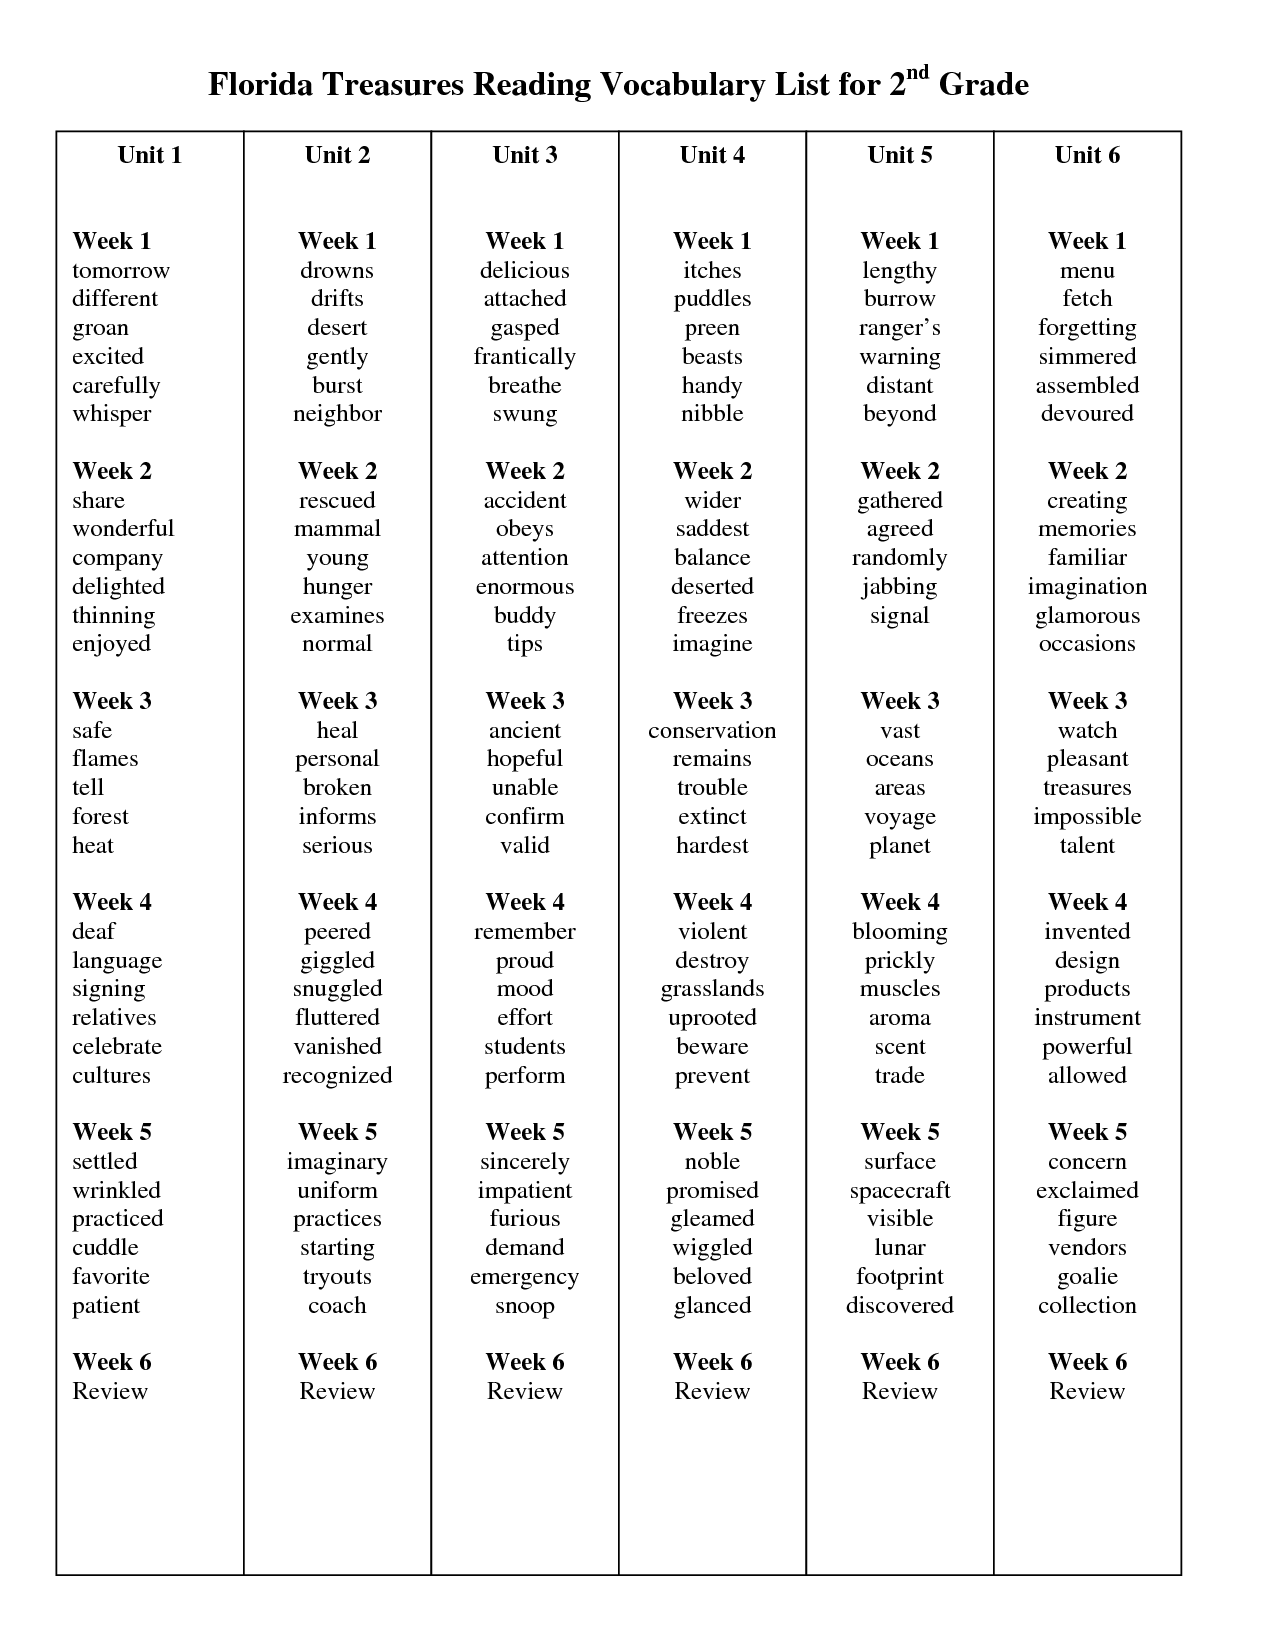 List of Core Words second grade | Florida Treasures Reading ...